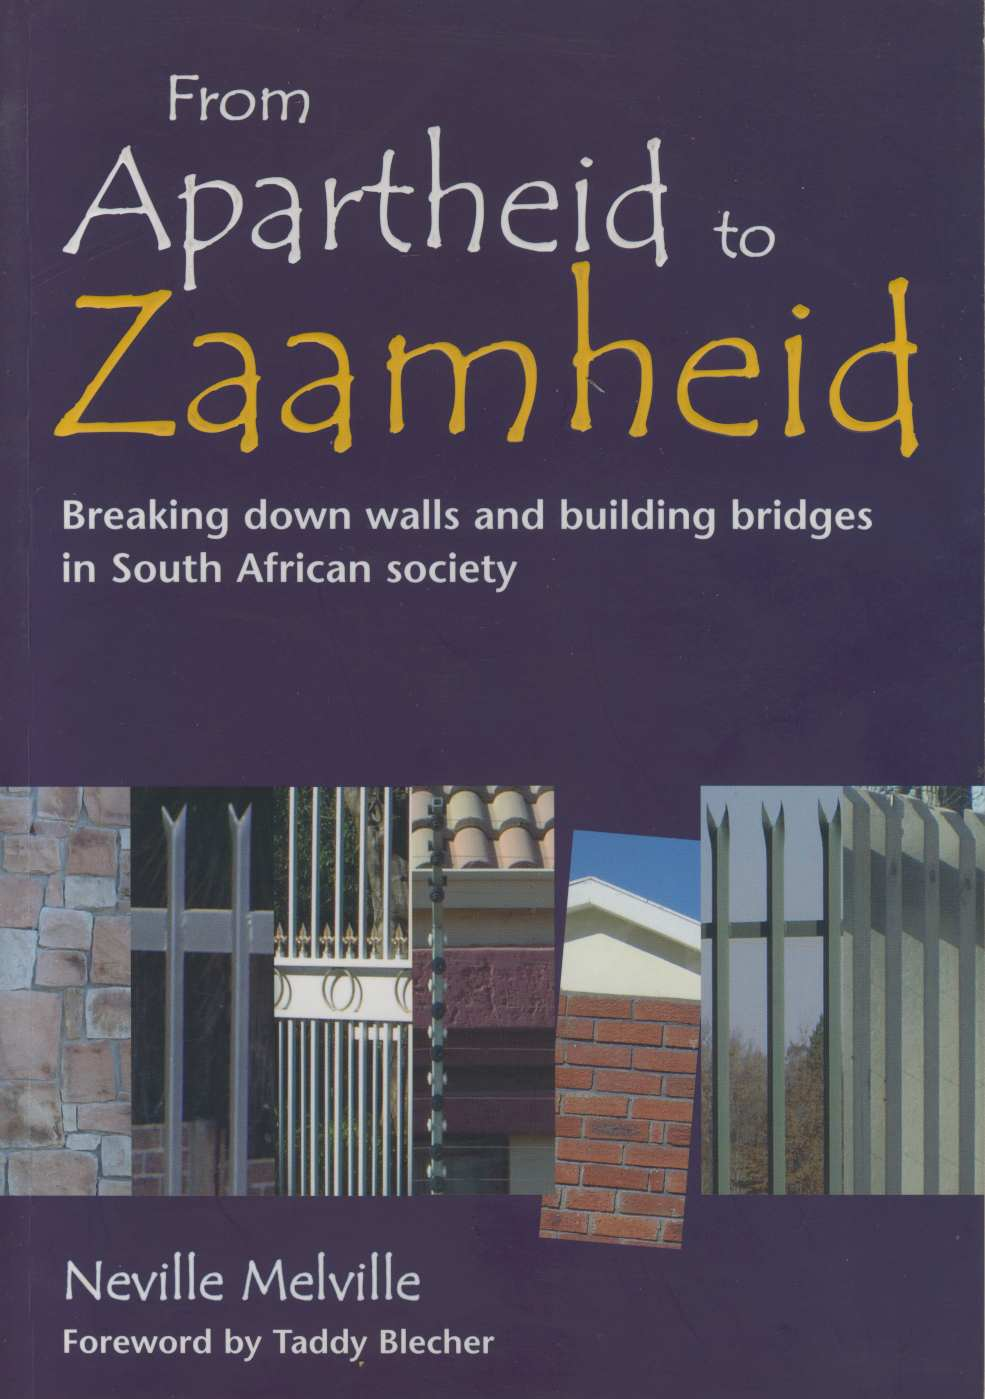 From Apartheid to Zaamheid – a book review